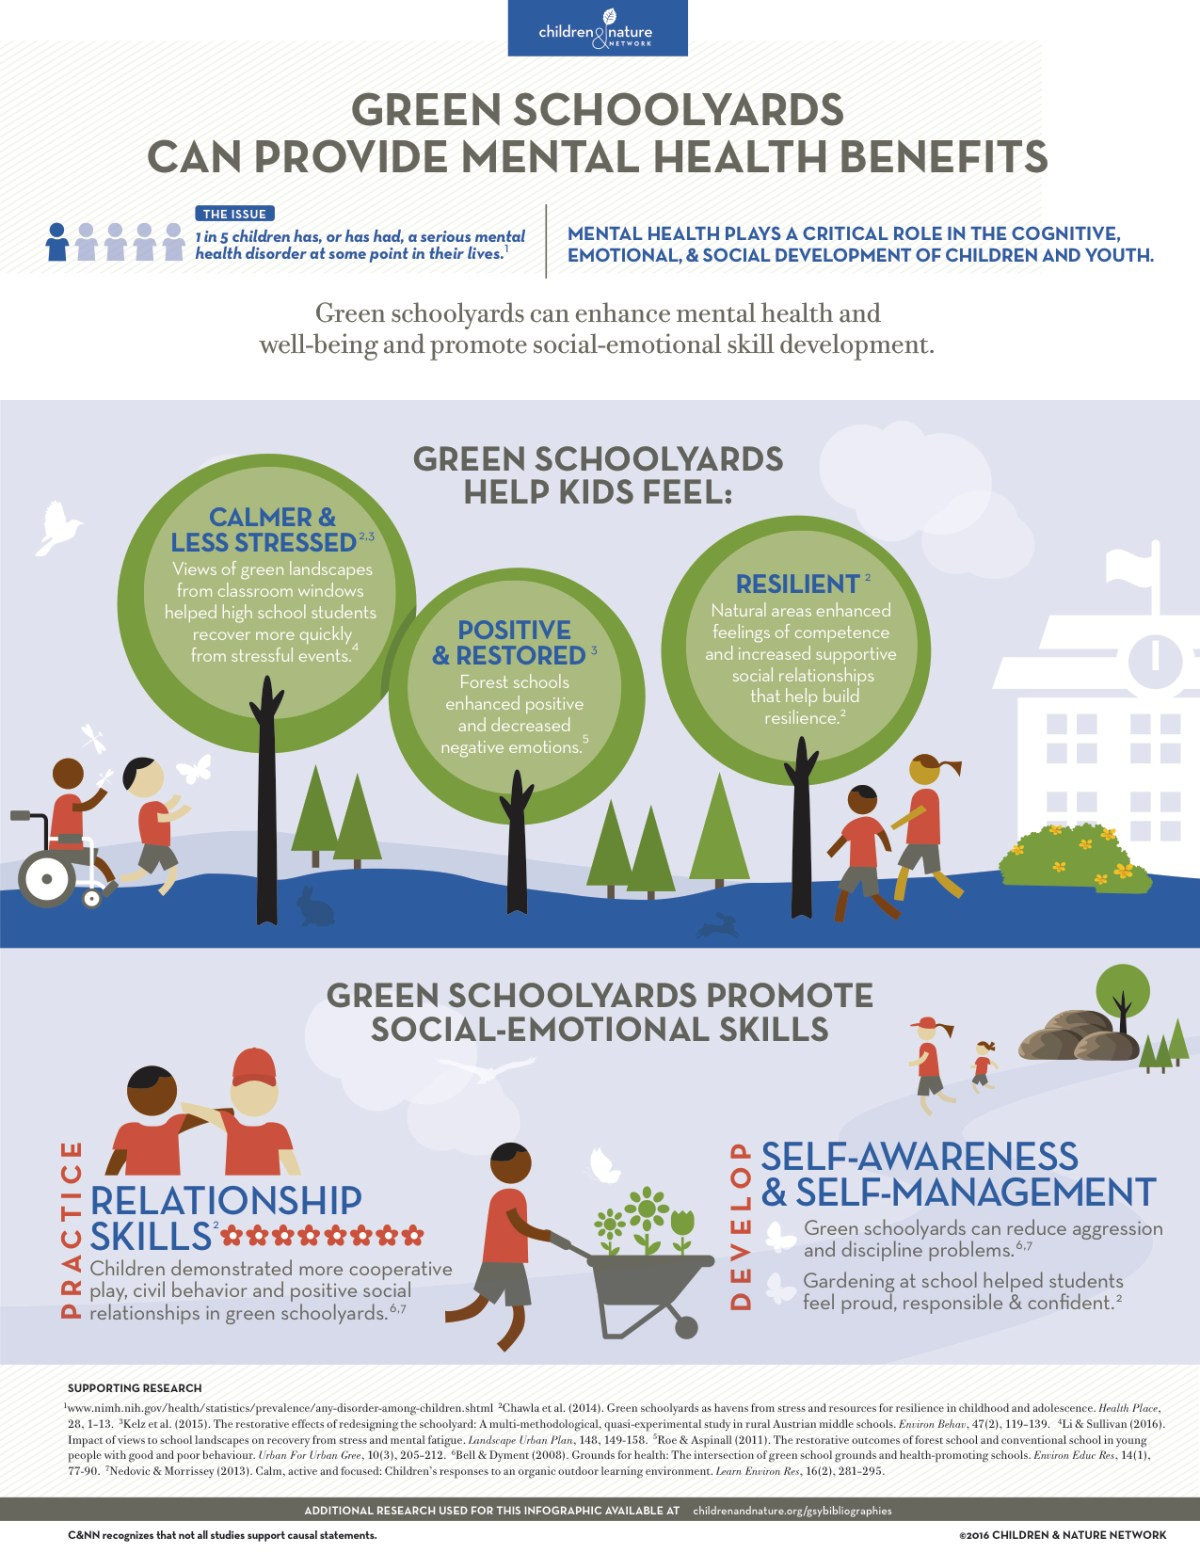 Green Schoolyards and Mental Health Benefits